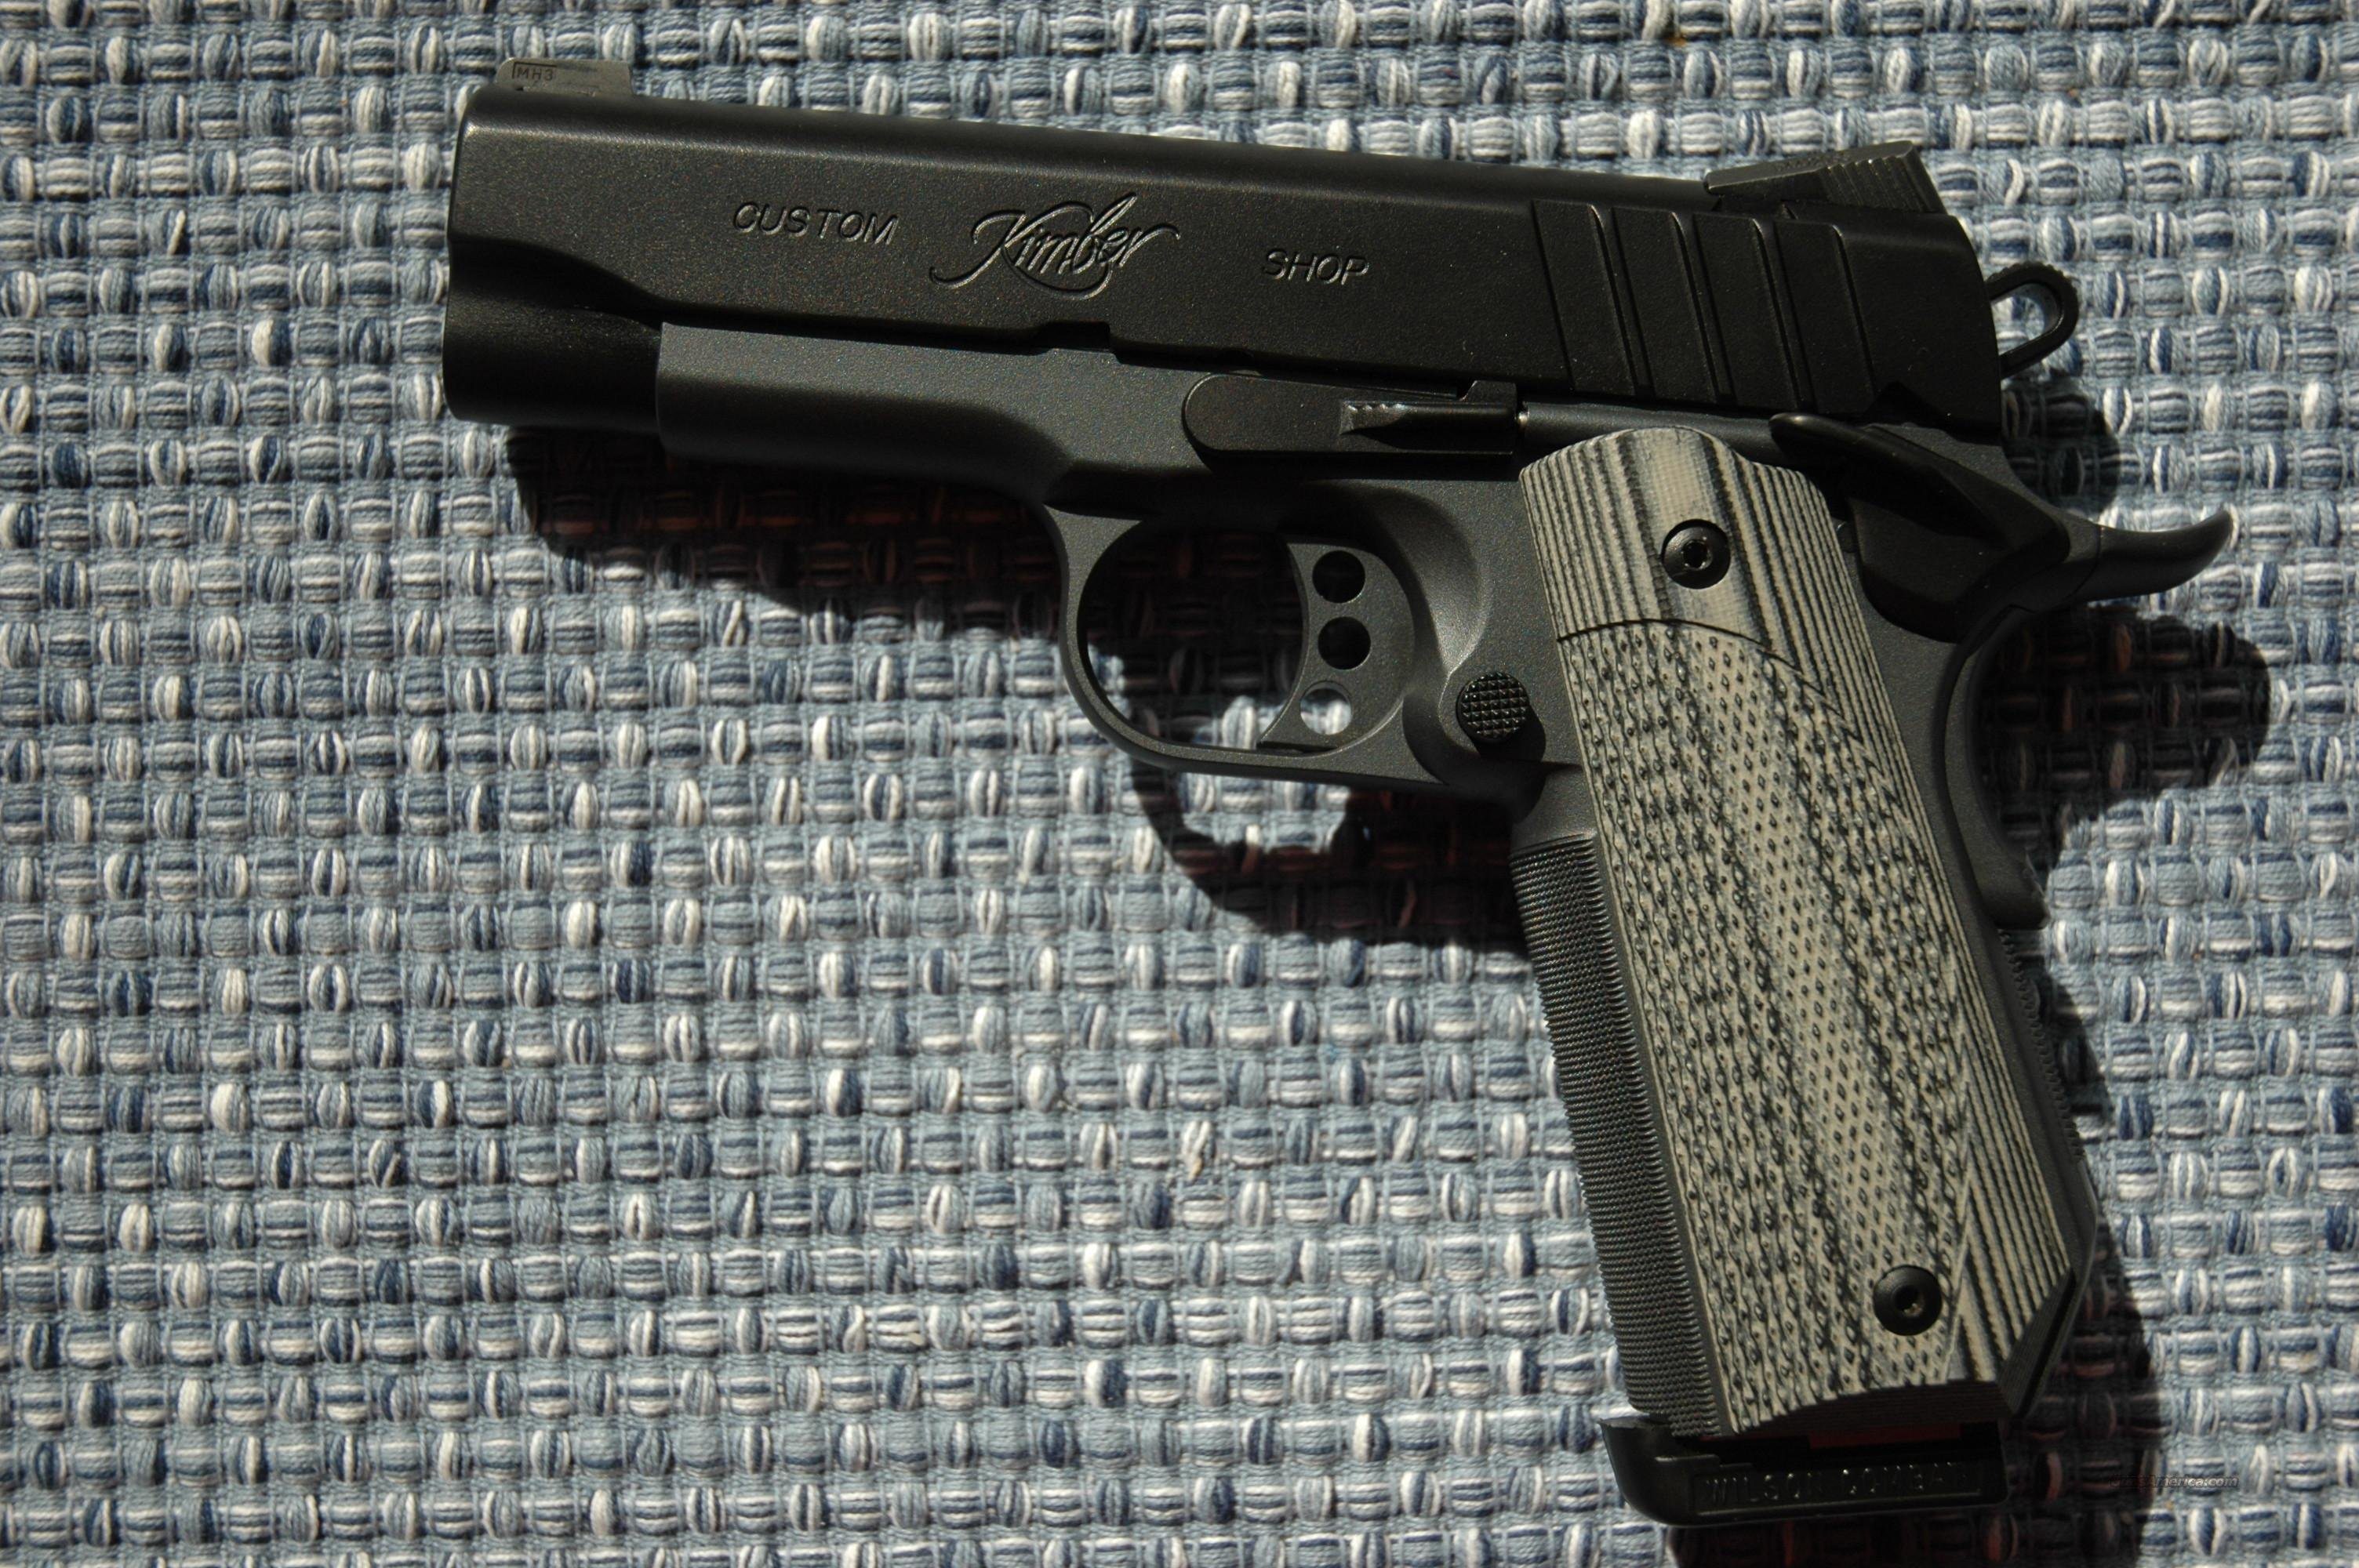 Kimber 38 Super Incredible custom gun  Guns > Pistols > Wilson Combat Pistols